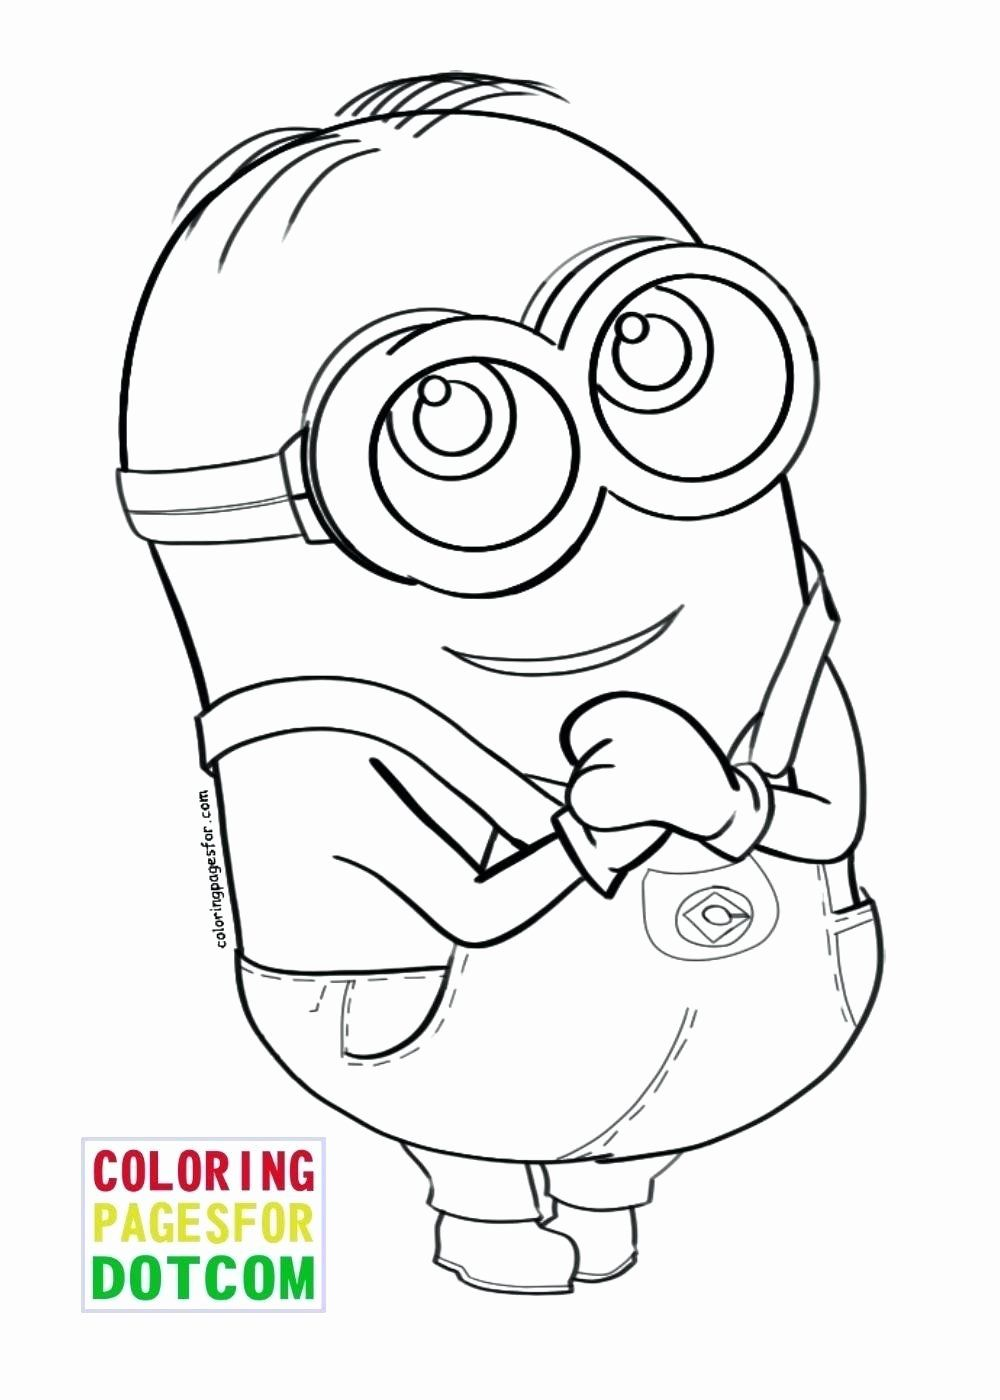 Free Printable Coloring Pages Minions Best Of Minions To Color Producthired In 2020 Minion Coloring Pages Minions Coloring Pages Coloring Pages To Print